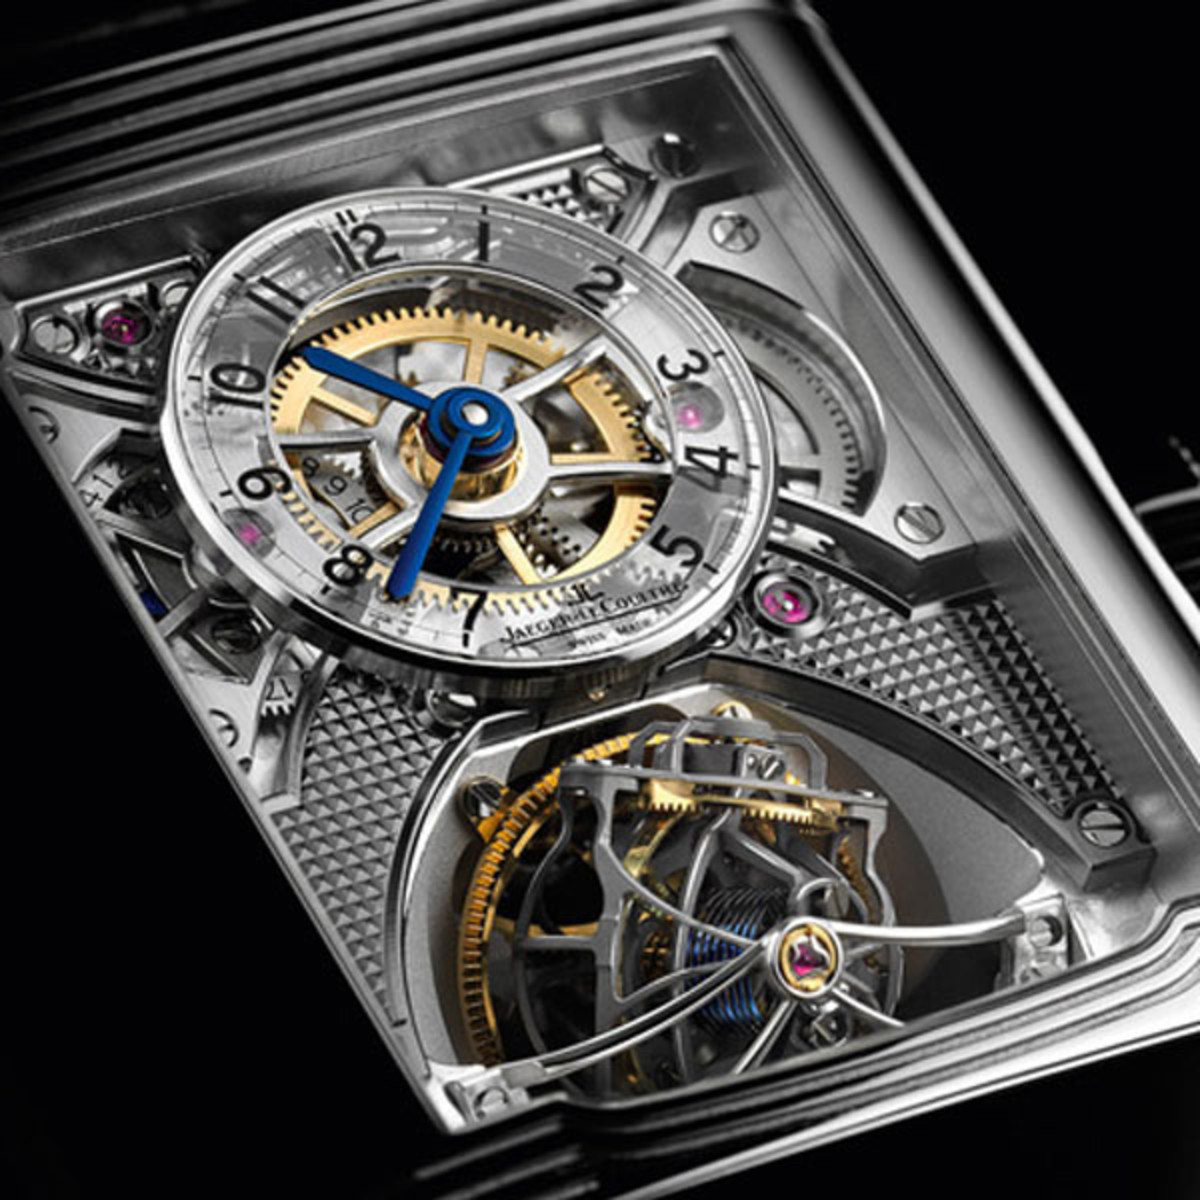 courvoisier-outrageous-watches-01